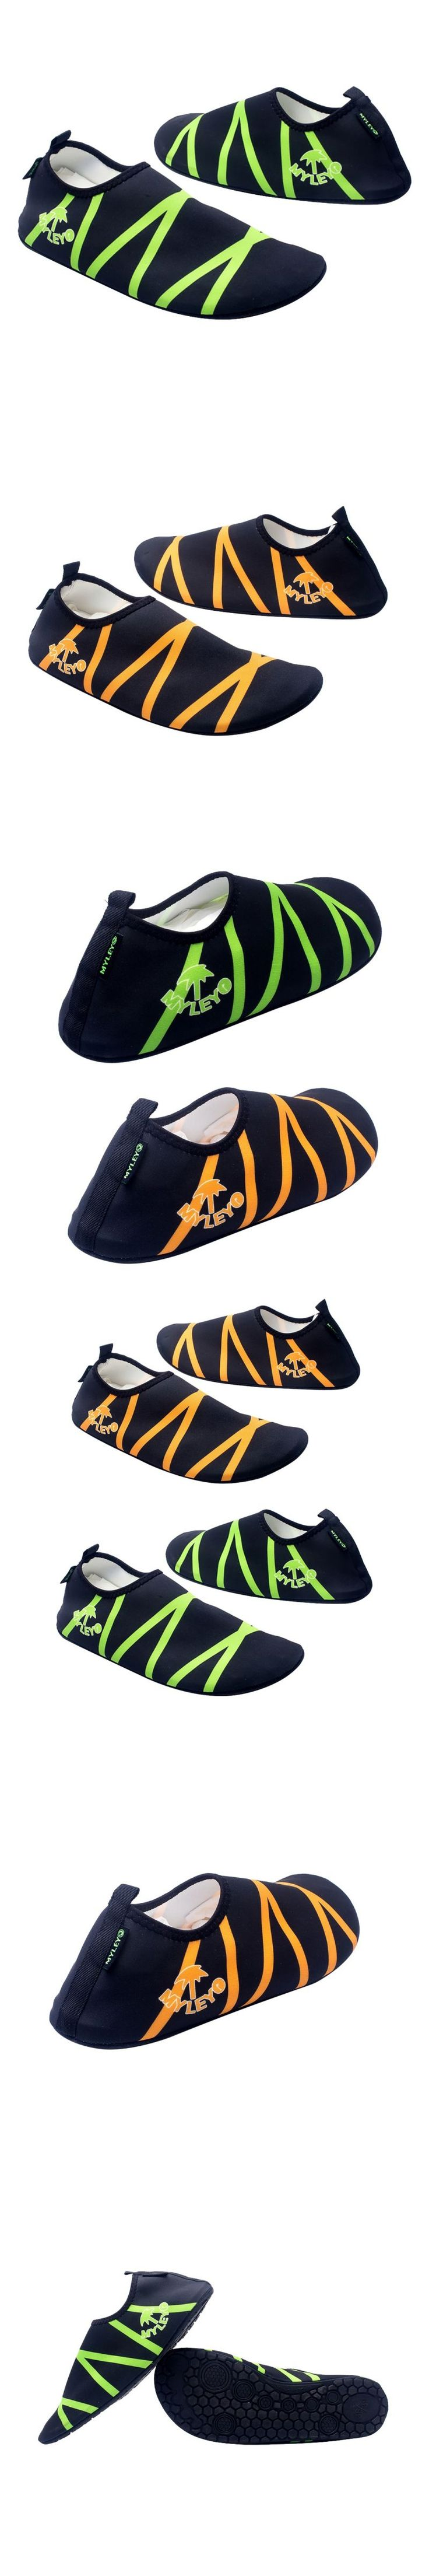 Unisex Outdoor Sport Sandals Summer Sport Water Skiing Swimming Shoes Slip-on Soft Diving Boots